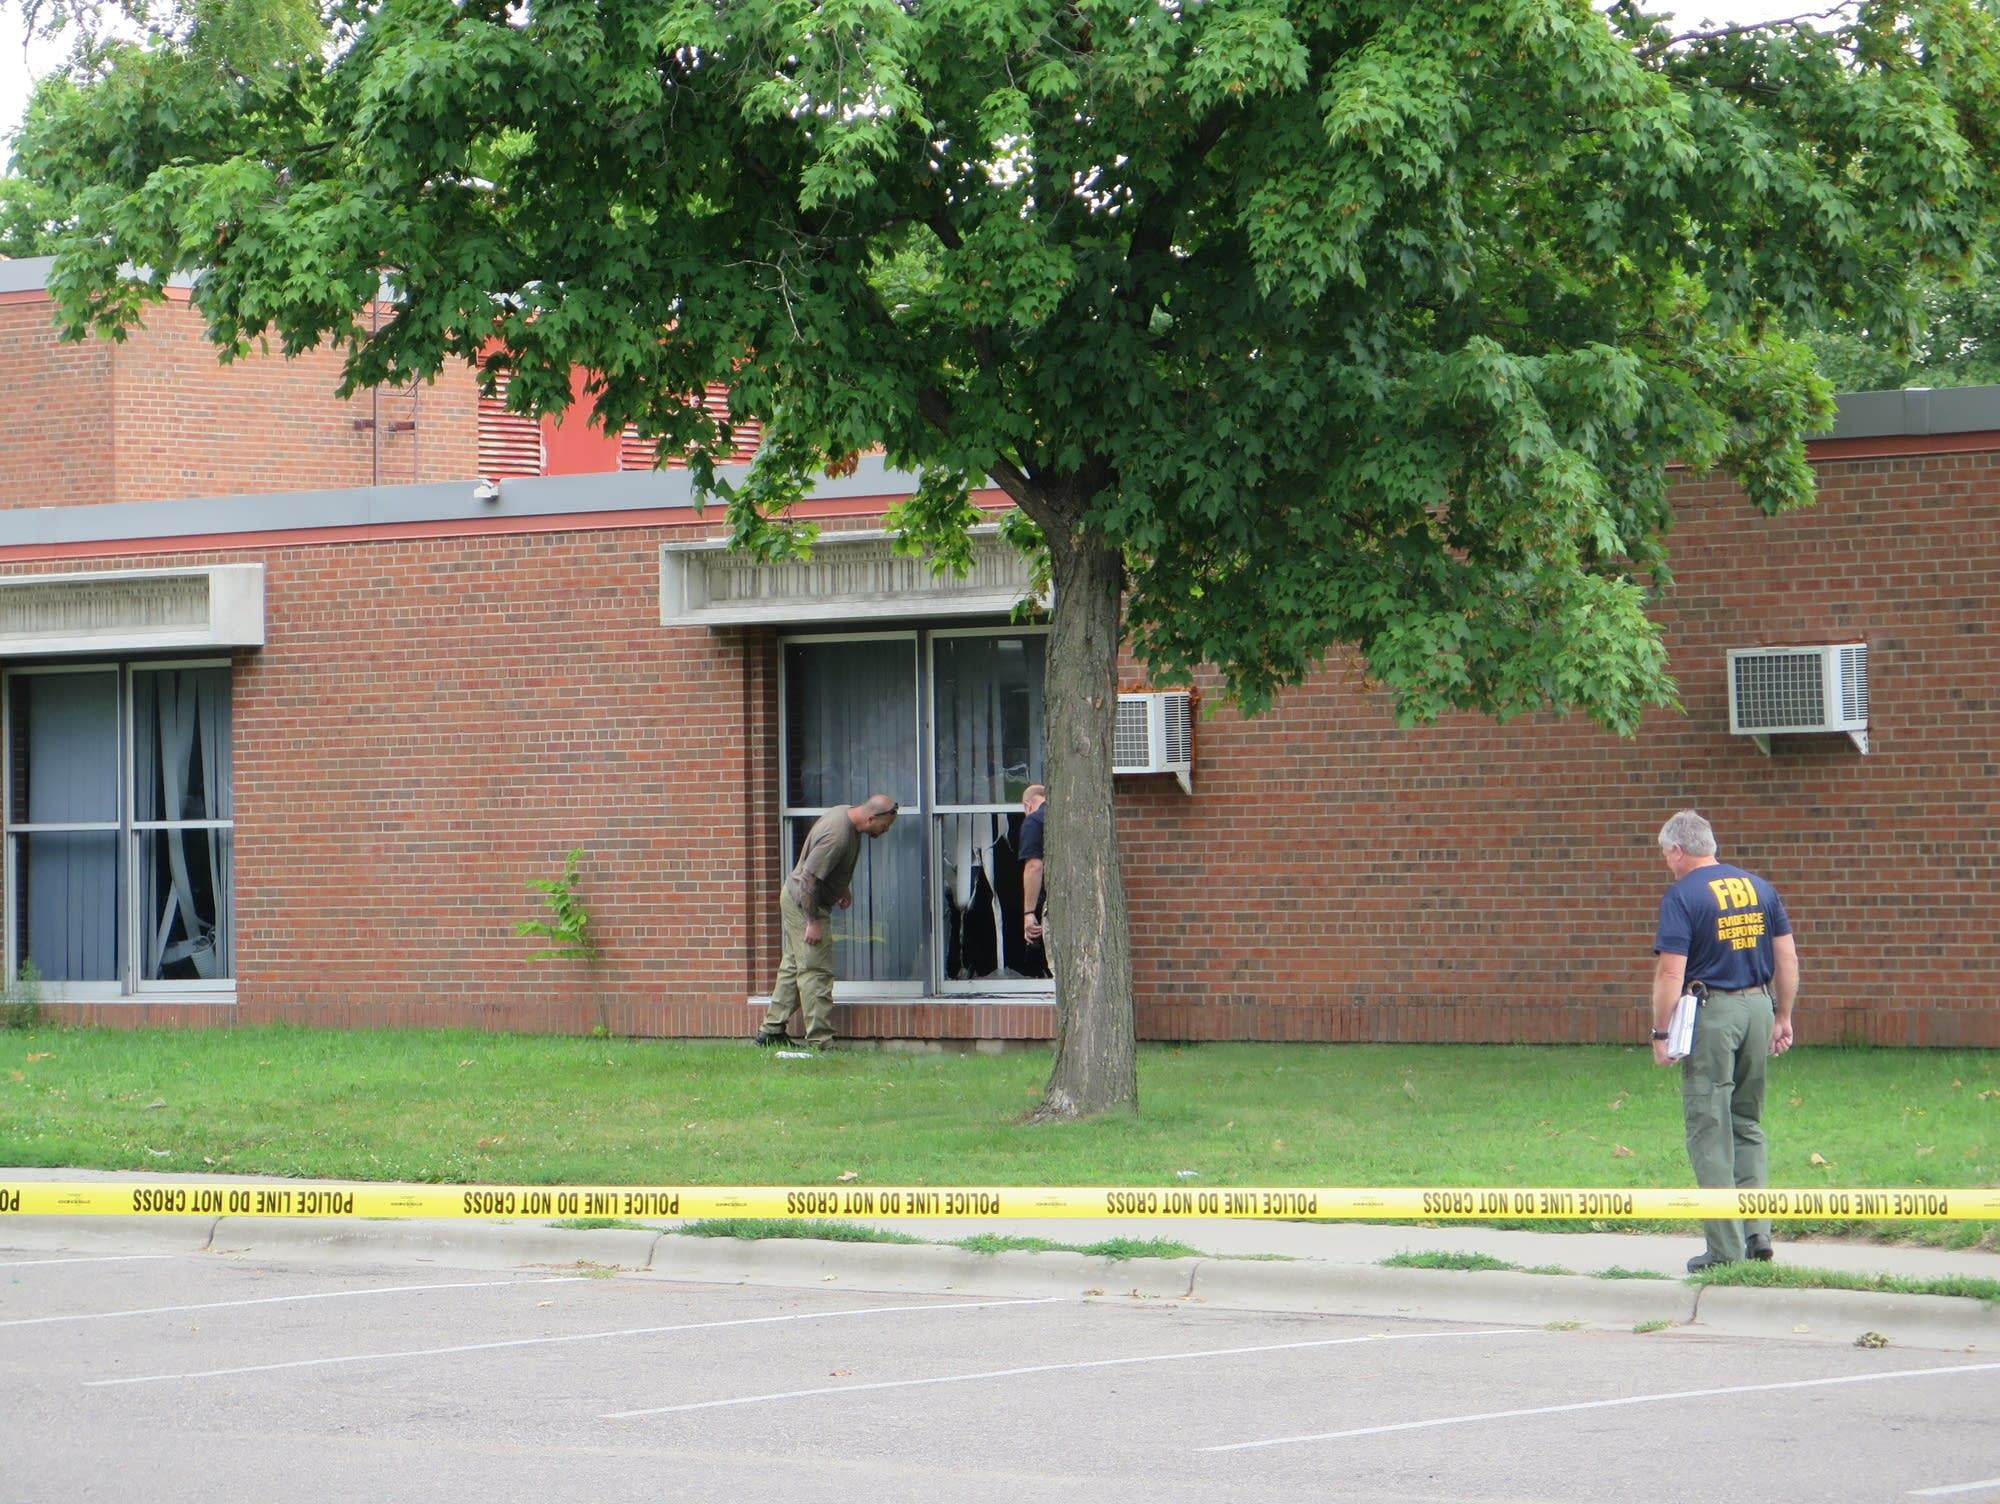 Explosive device caused blast at Minnesota mosque during morning prayer